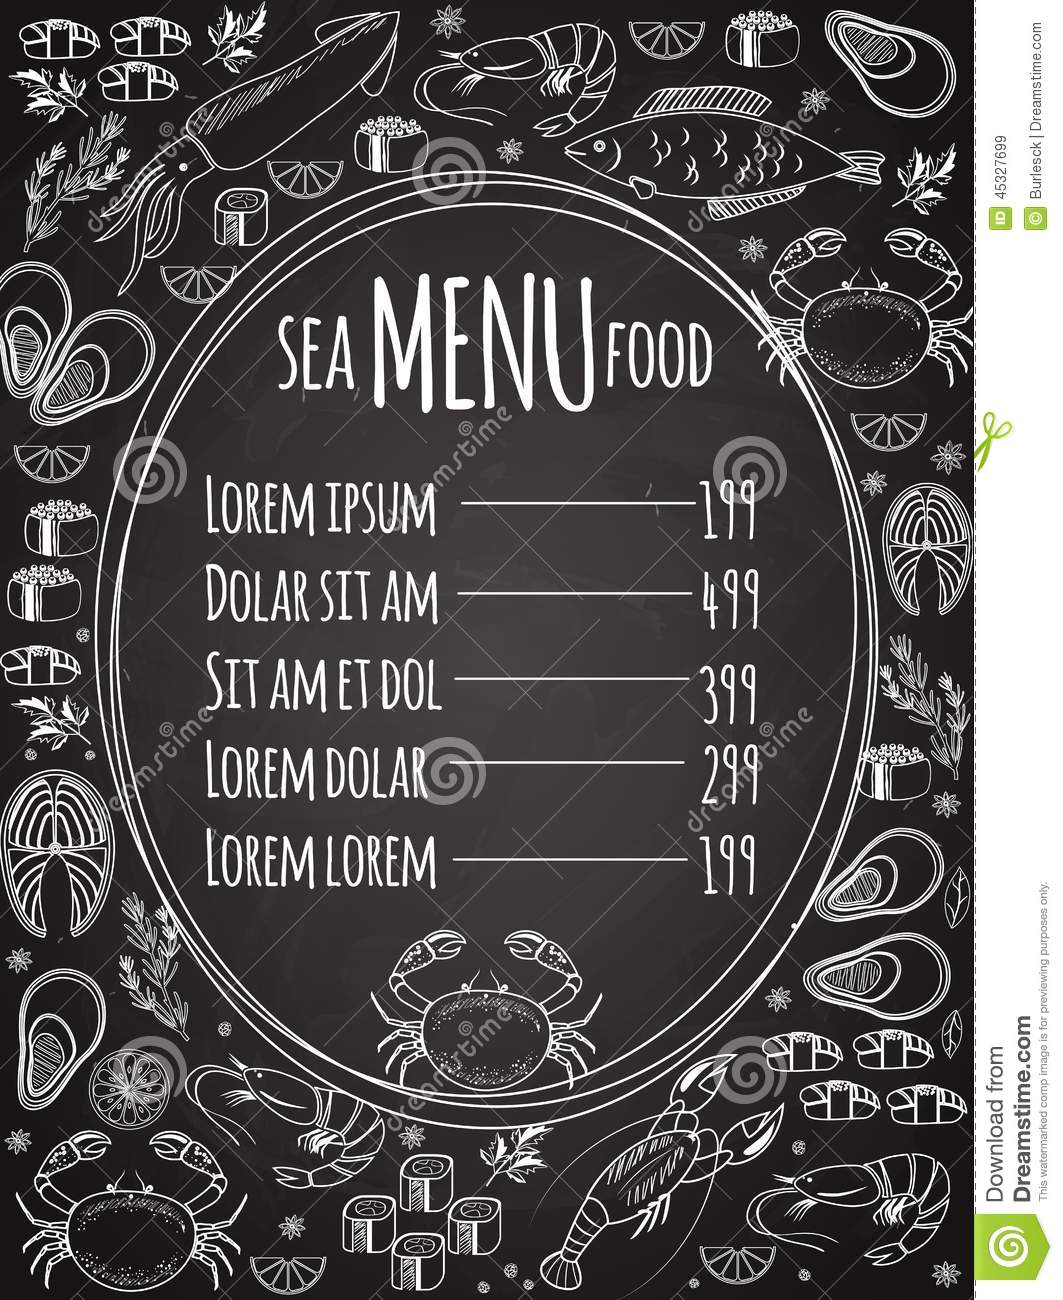 Seafood Chalkboard Menu Template Stock Vector - Image: 45327699